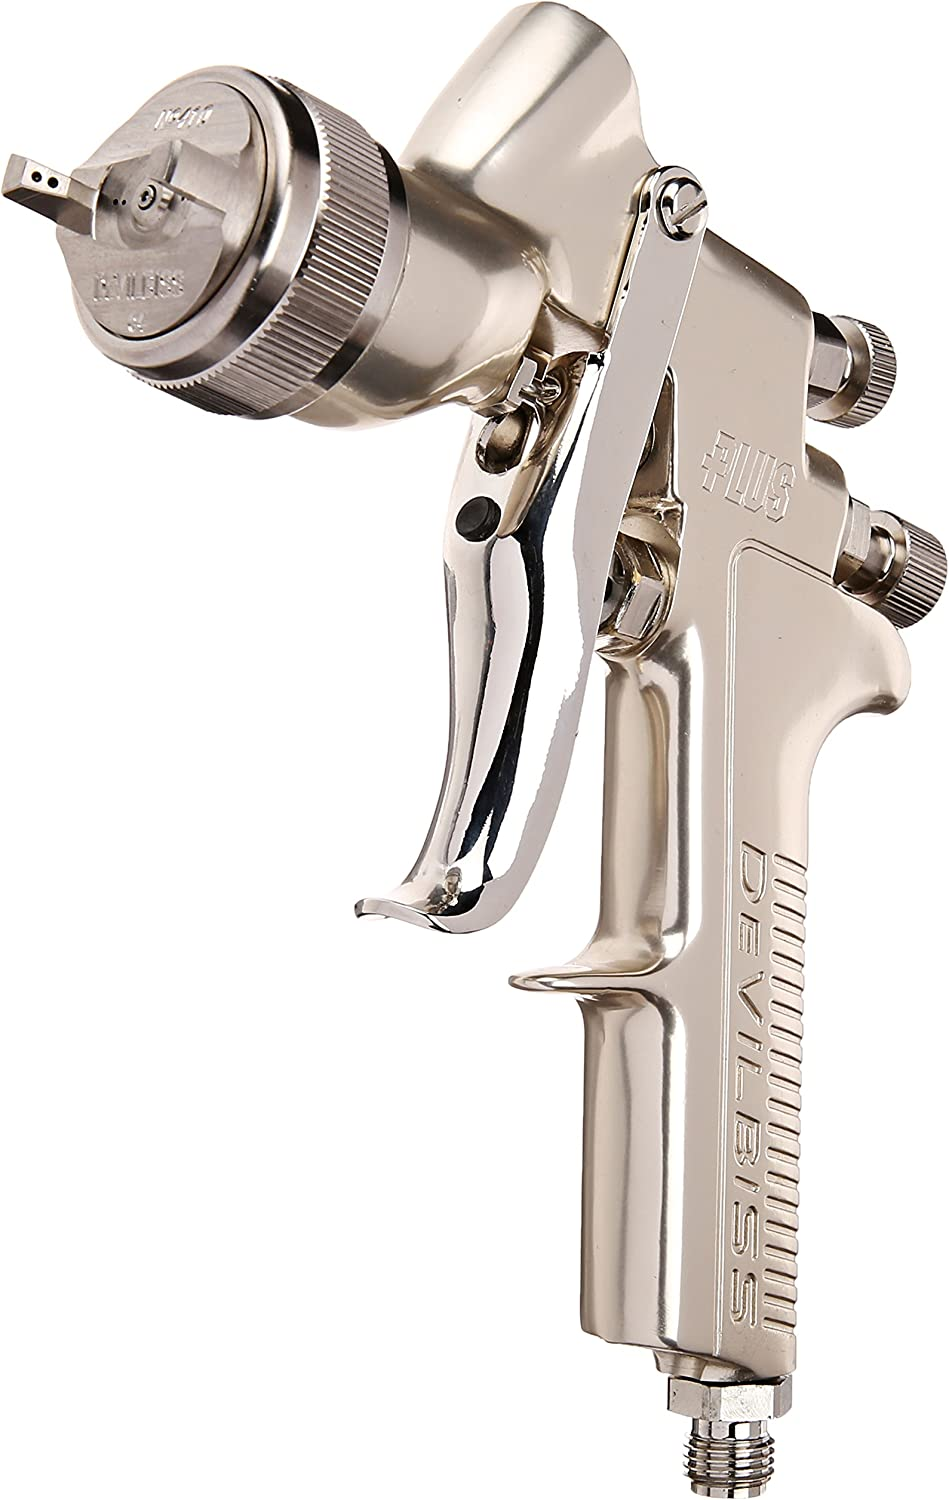 DeVilbiss (GFG670 Plus High Efficiency Gravity Feed Spray Gun